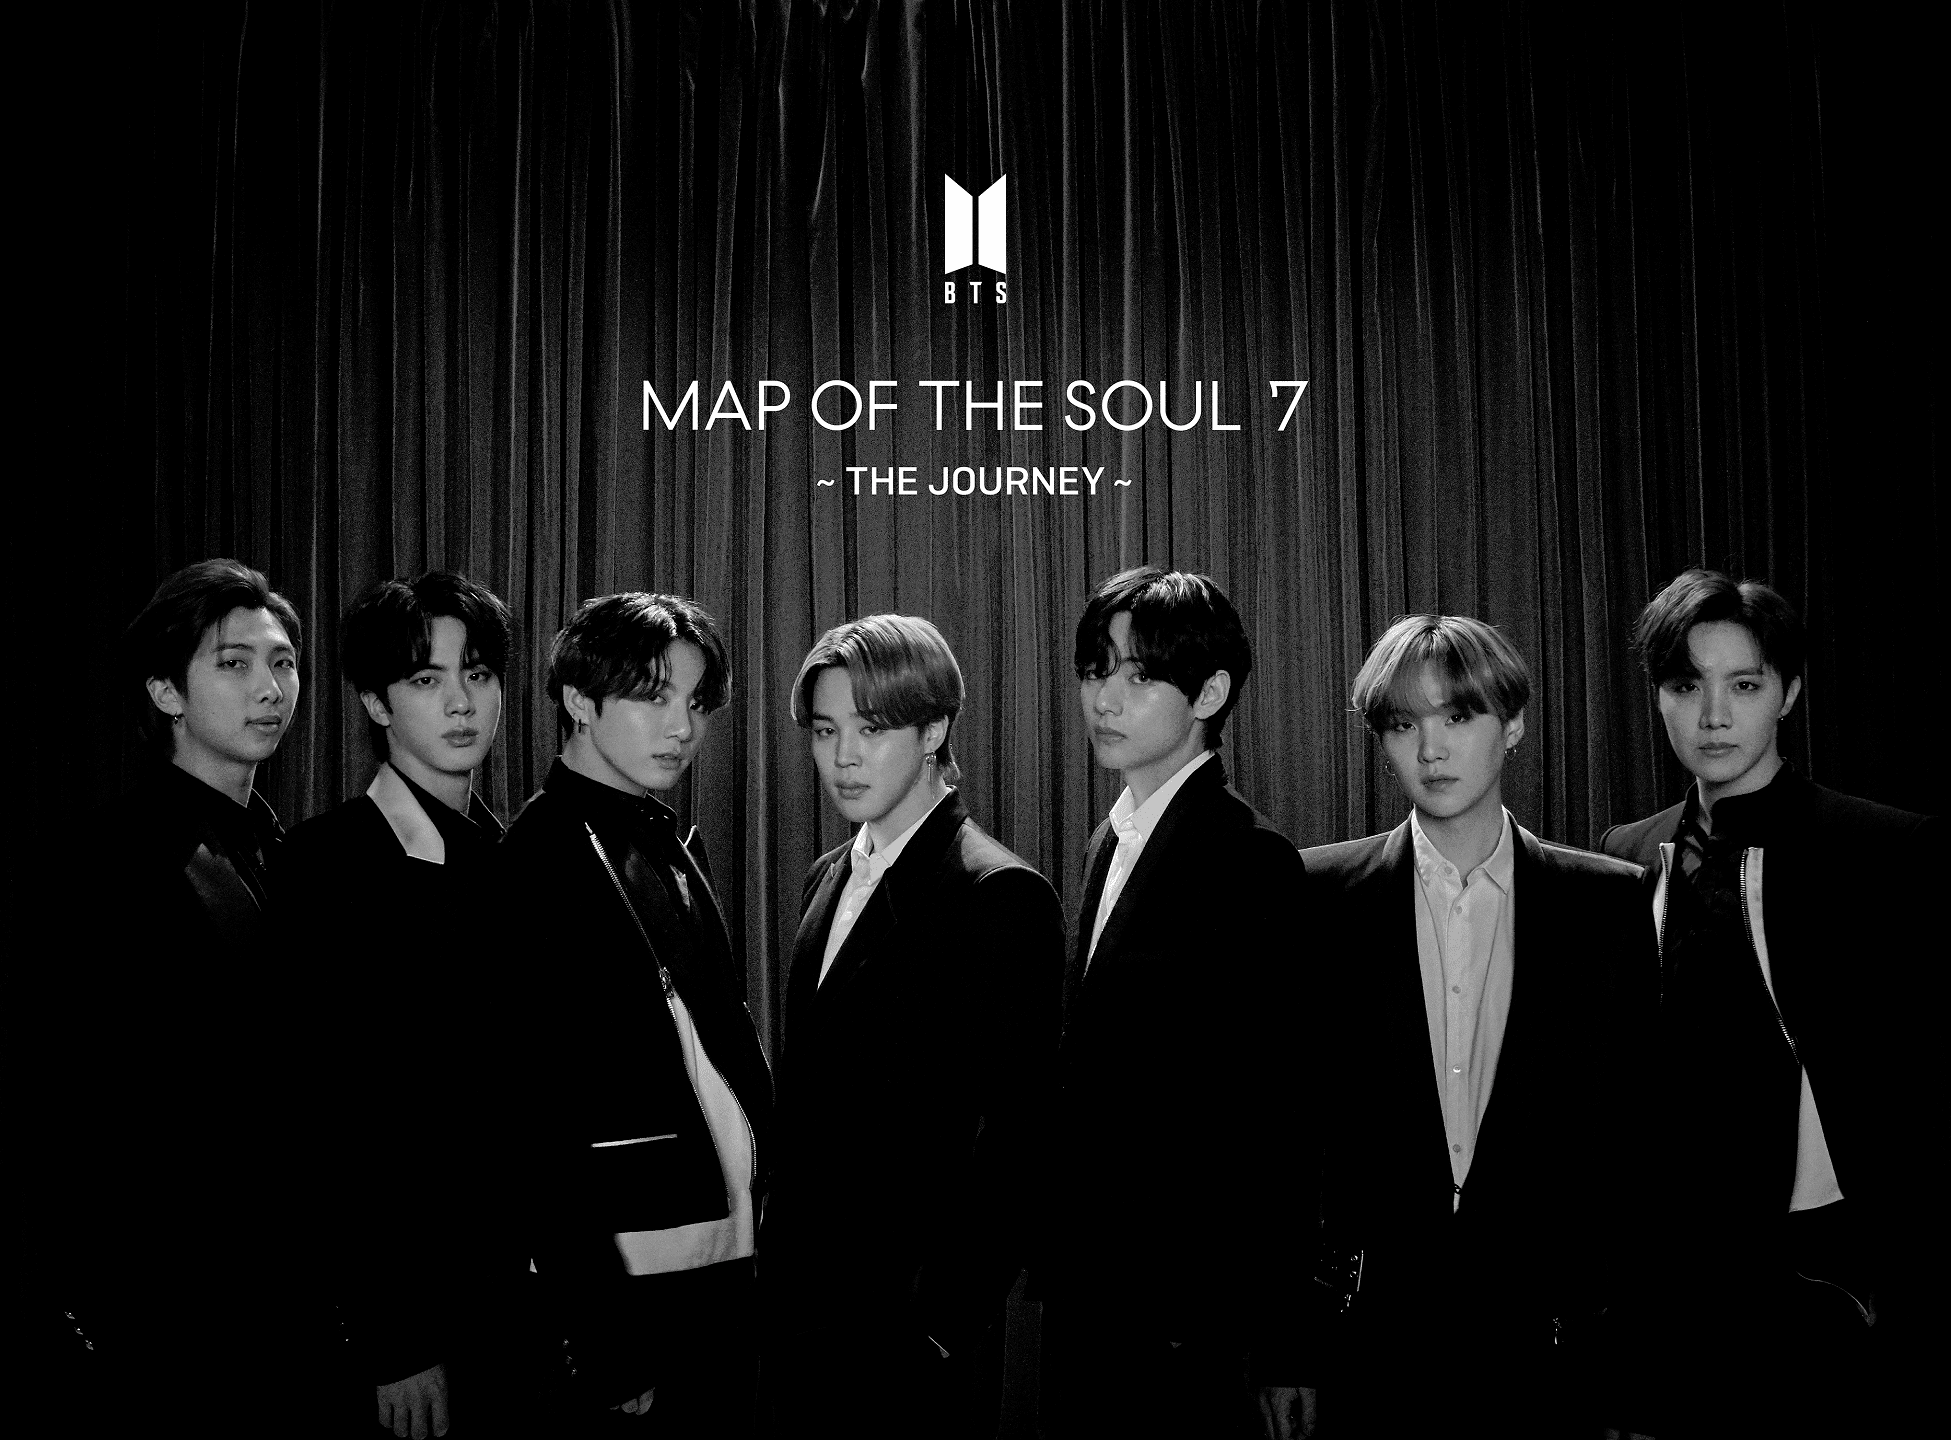 BTS Map of the Soul 7 The Journey Limited Edition C album cover.png